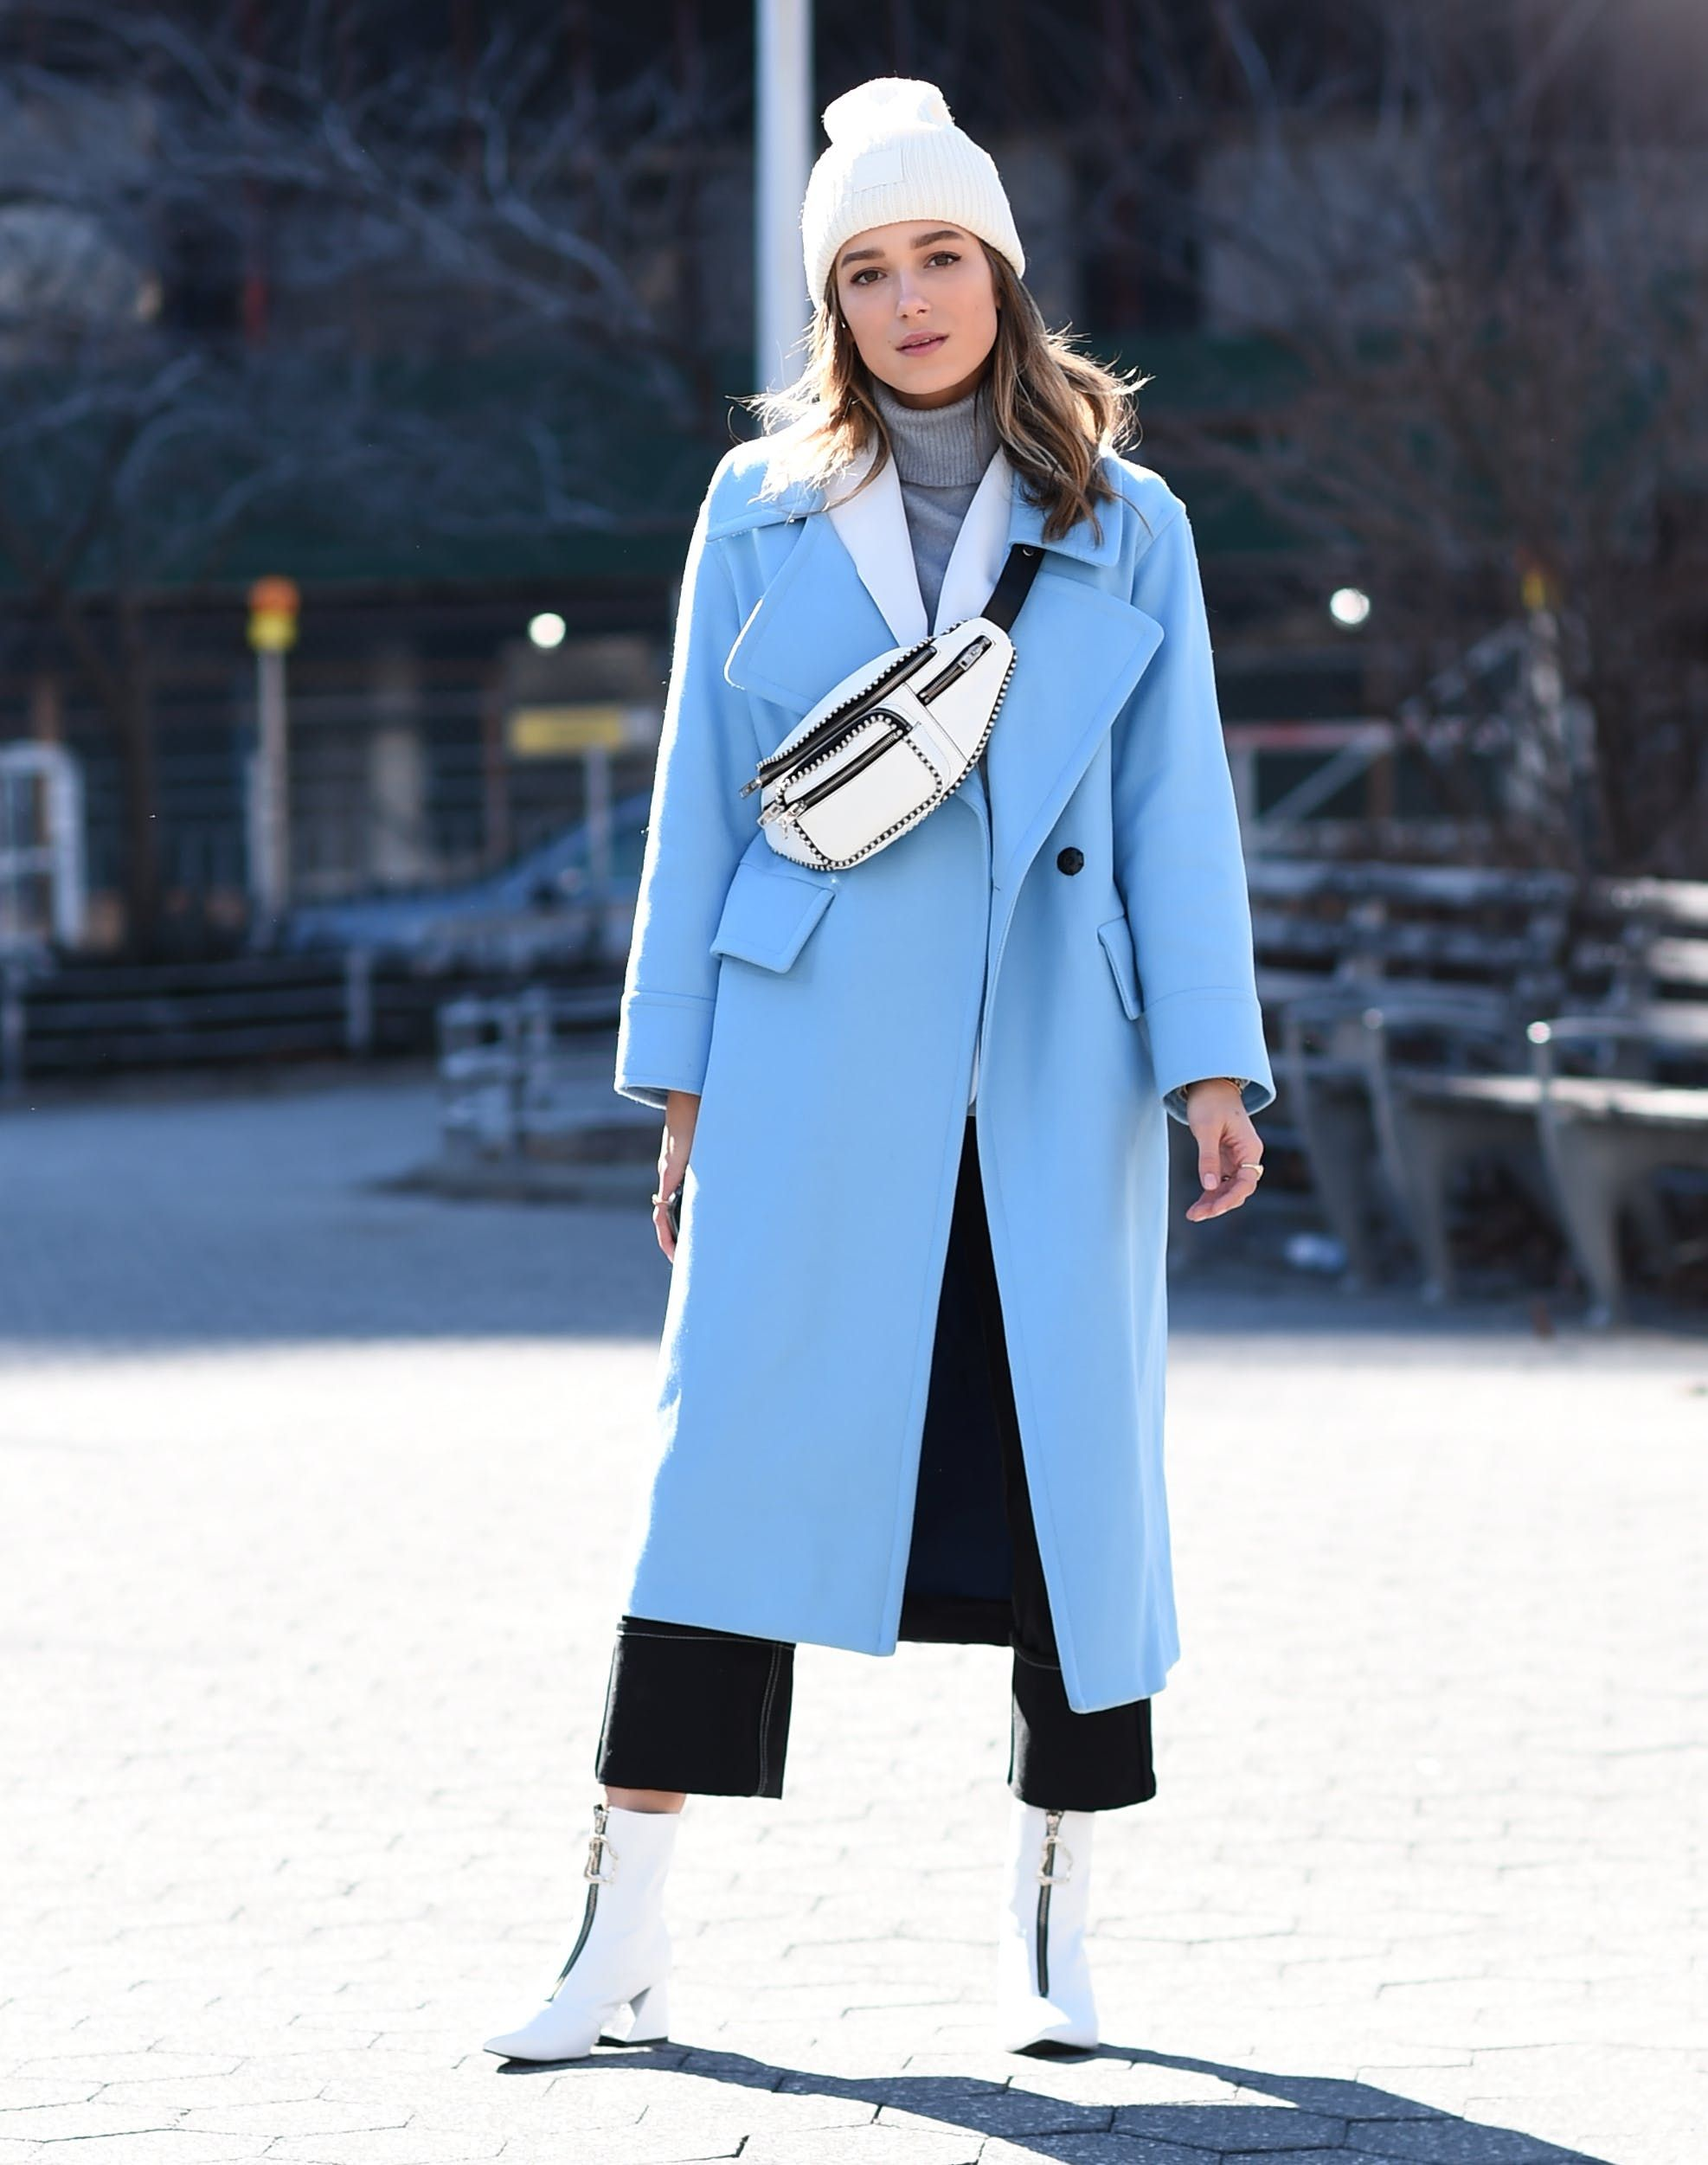 77ccdf11e38 31 Style Ideas to Try This March  purewow  outfit ideas  shopping  fashion